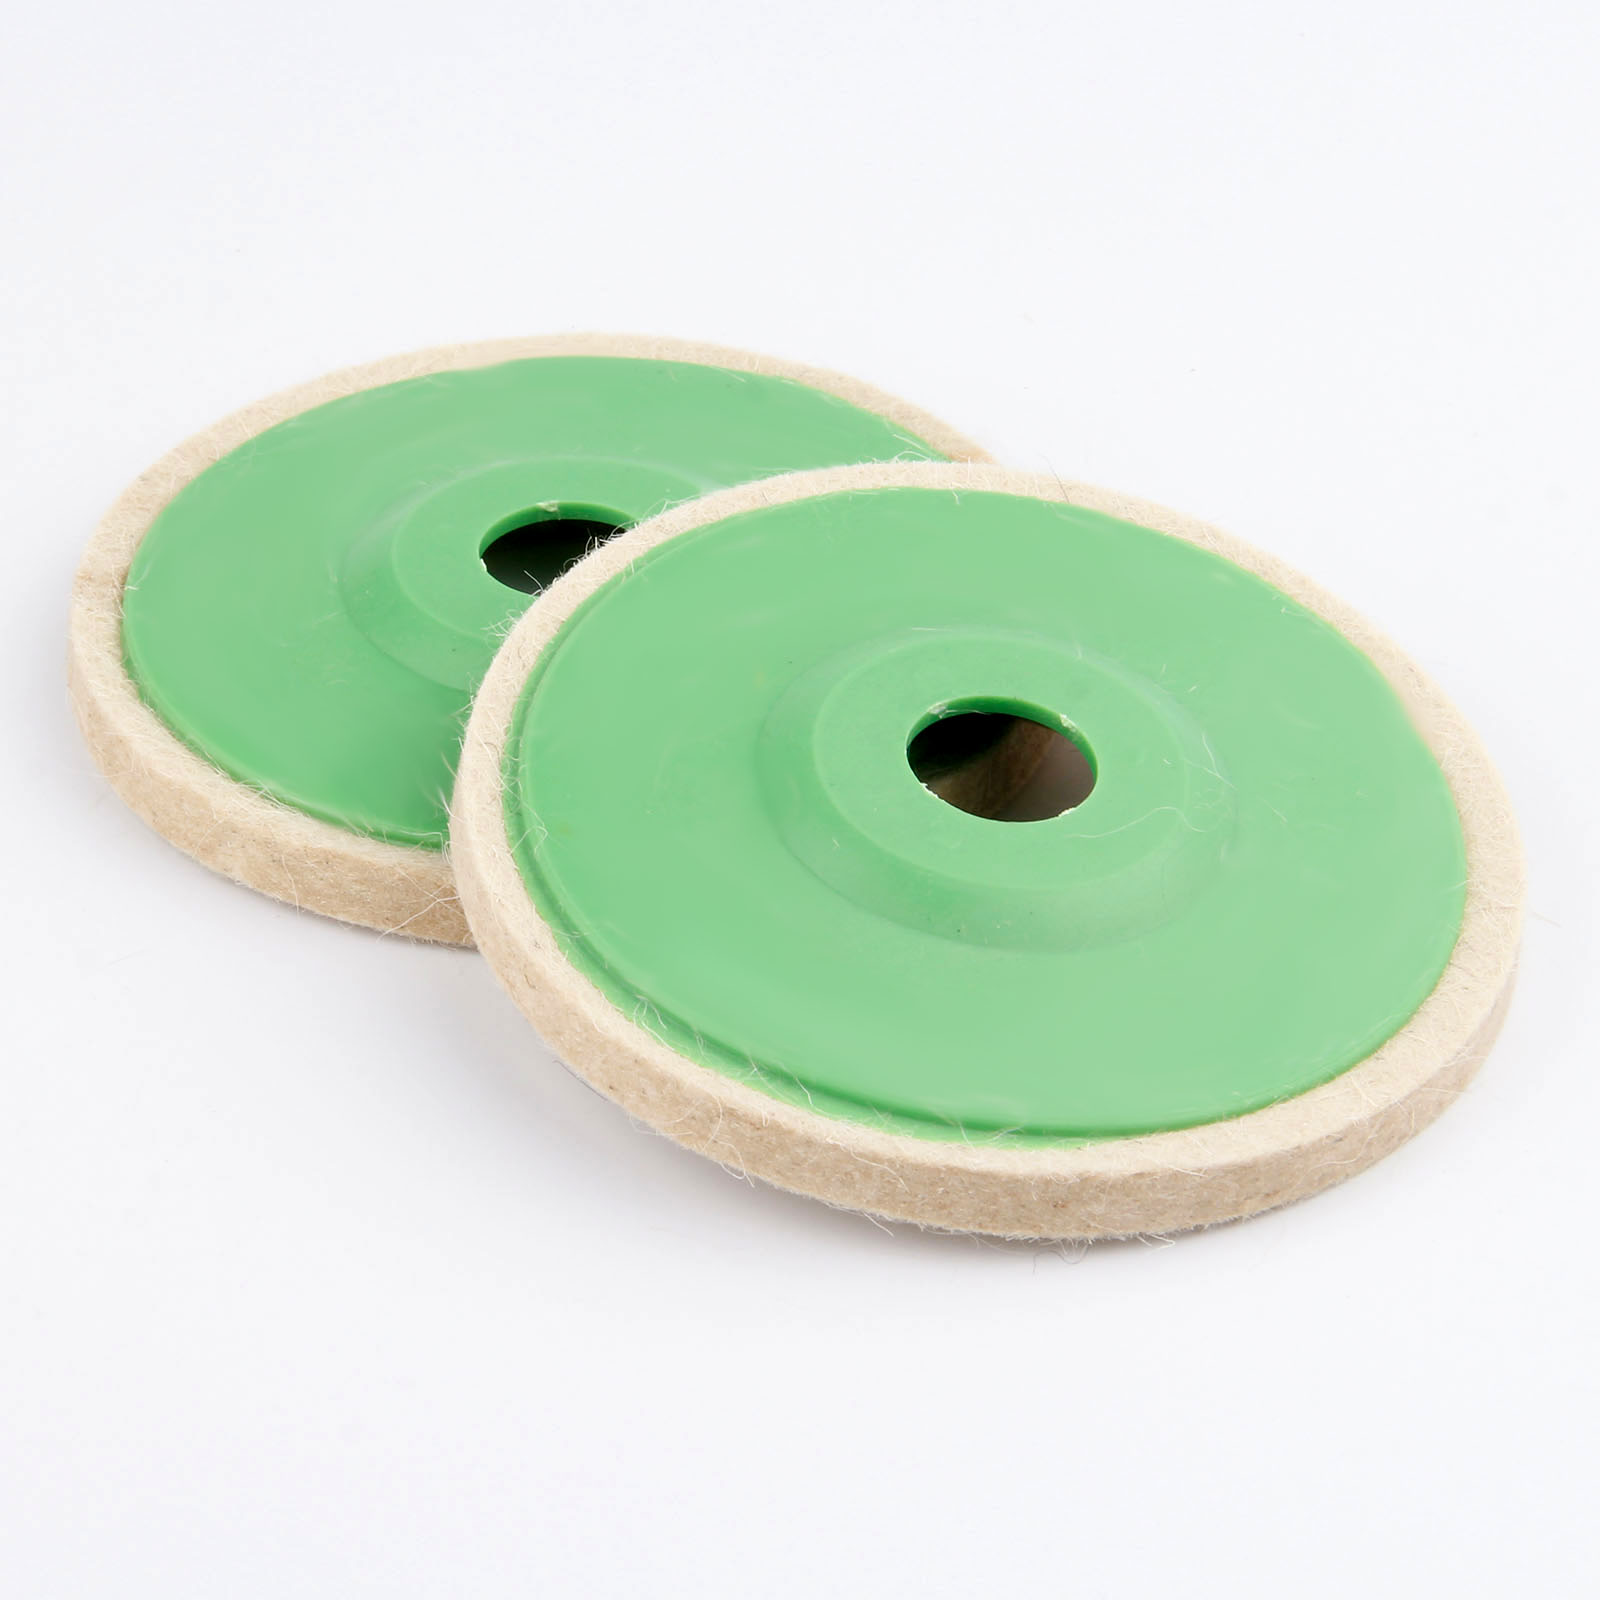 125mm Wool Felt Polishing Wheel Buffing Pads Grinding Abrasive Disc Rotary Tools